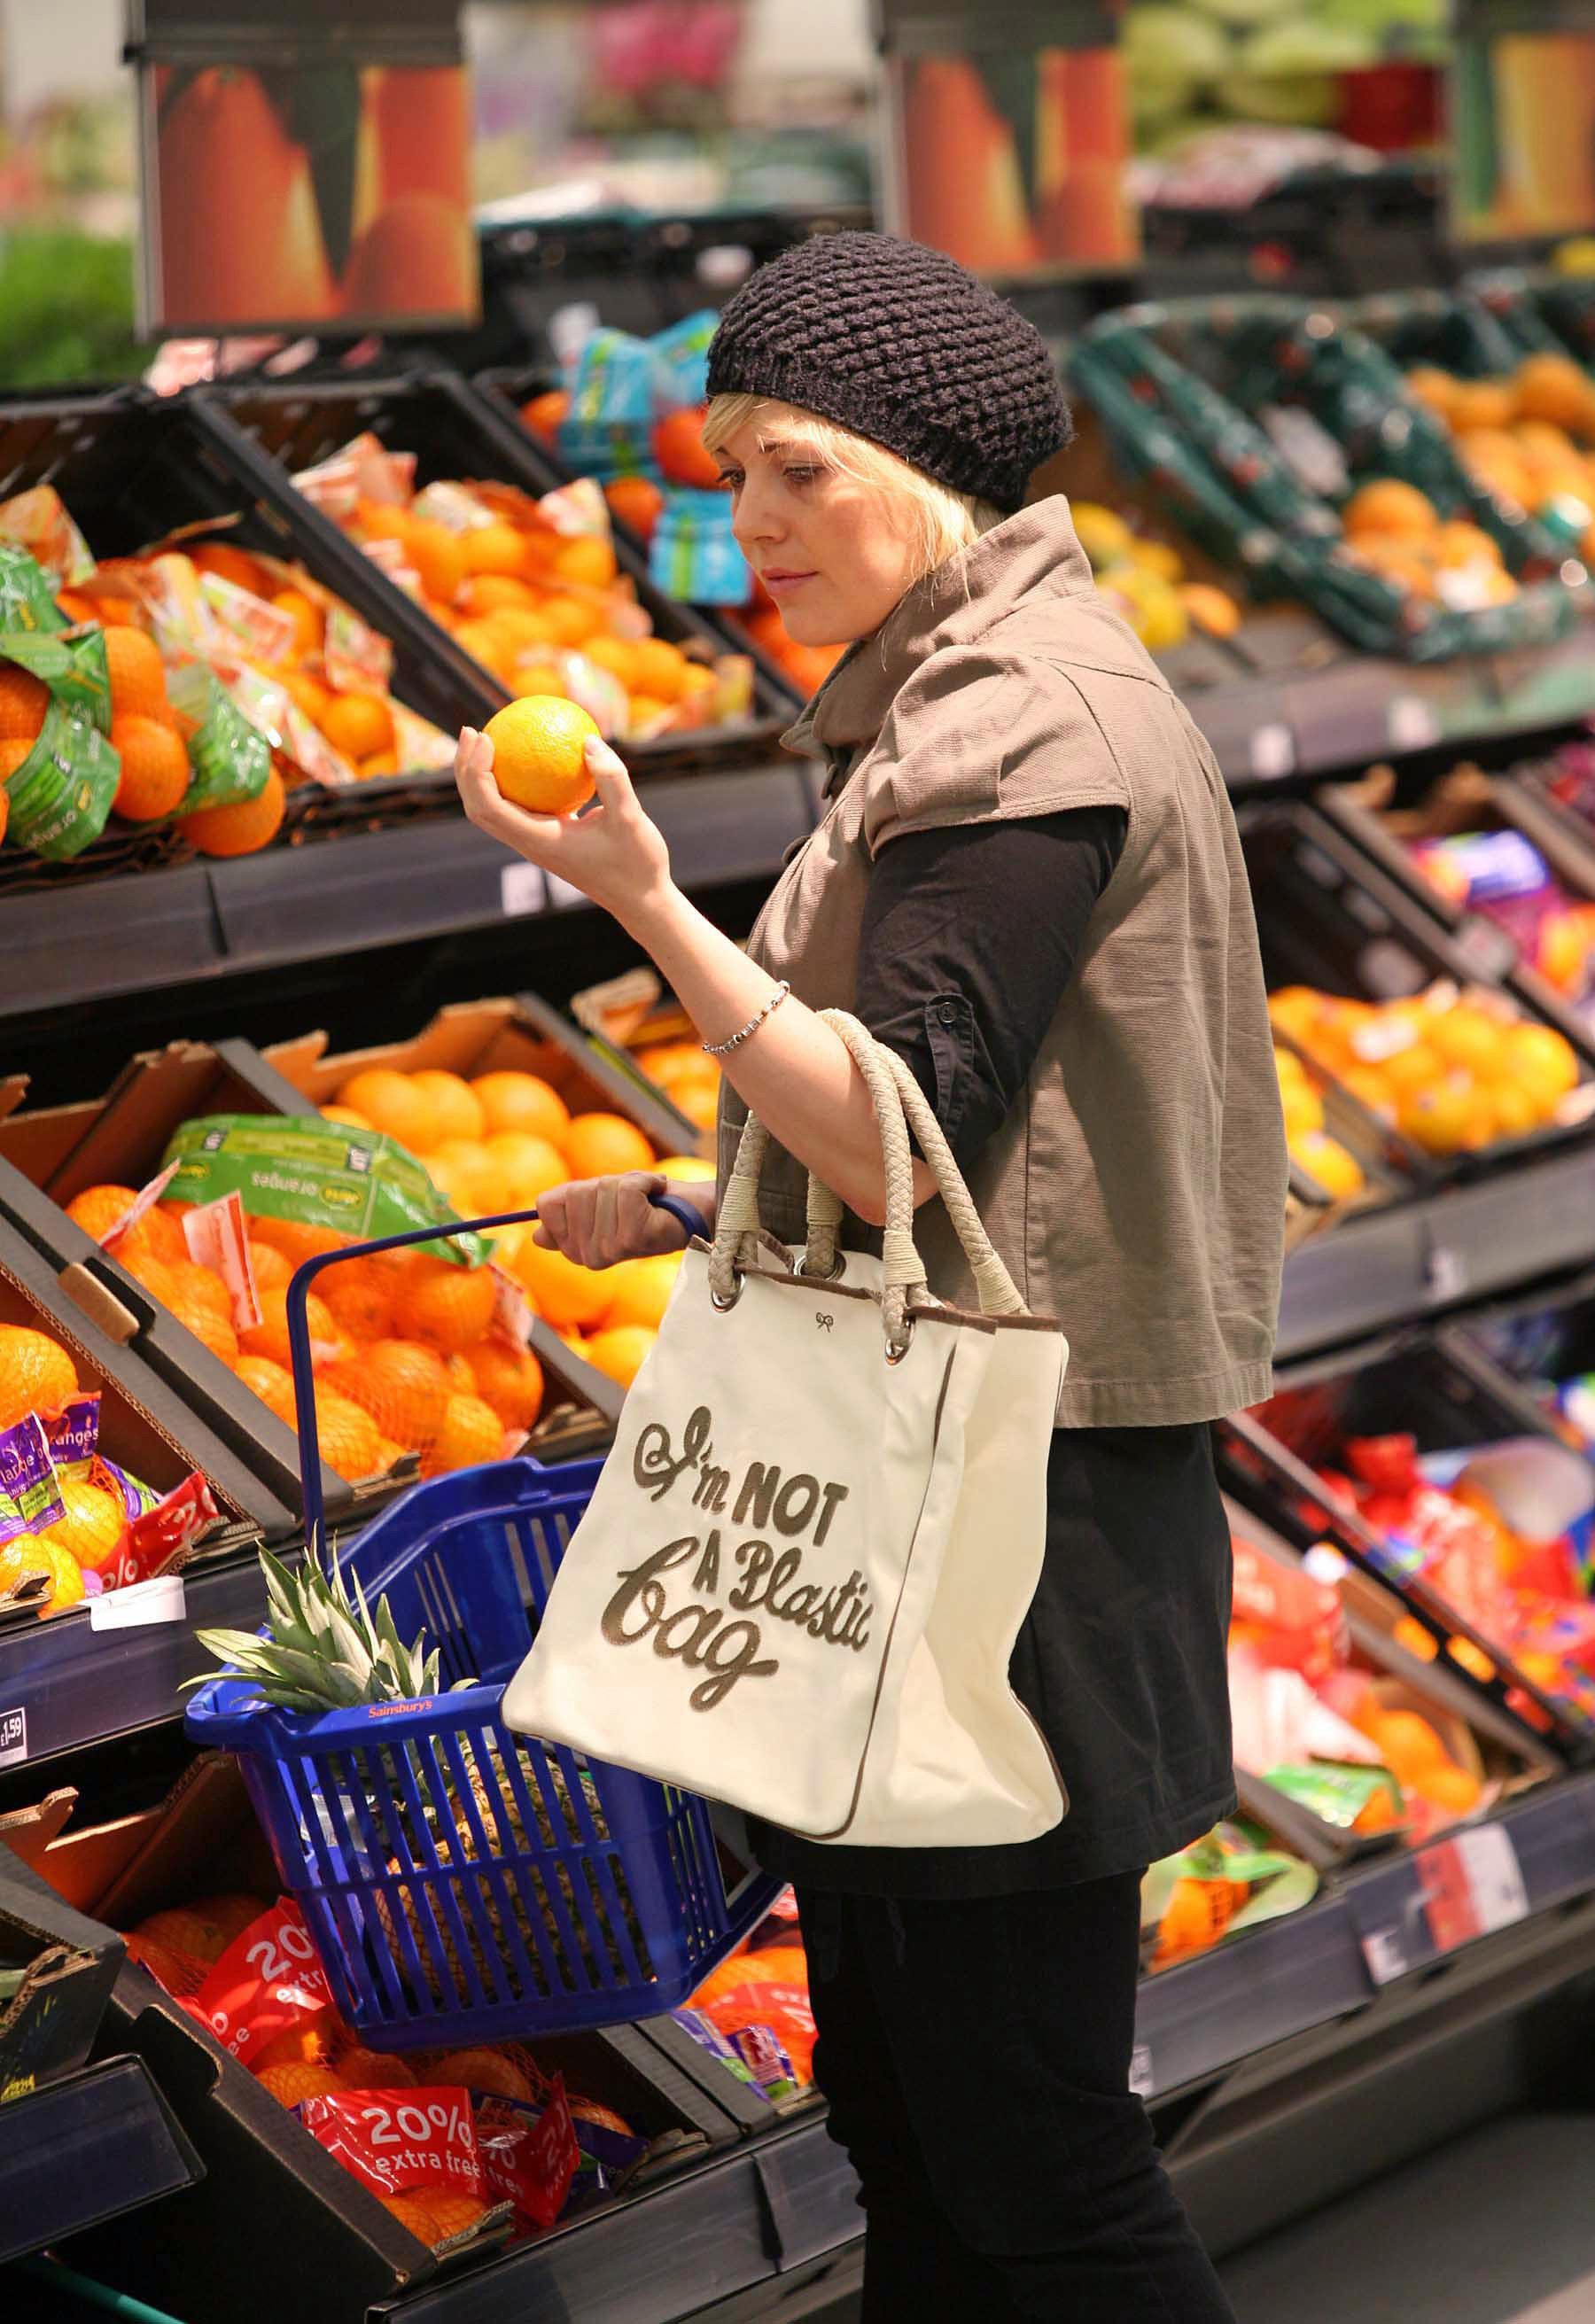 Customers will be able to purchase reusable bags made from recycled materials. Credit: PA